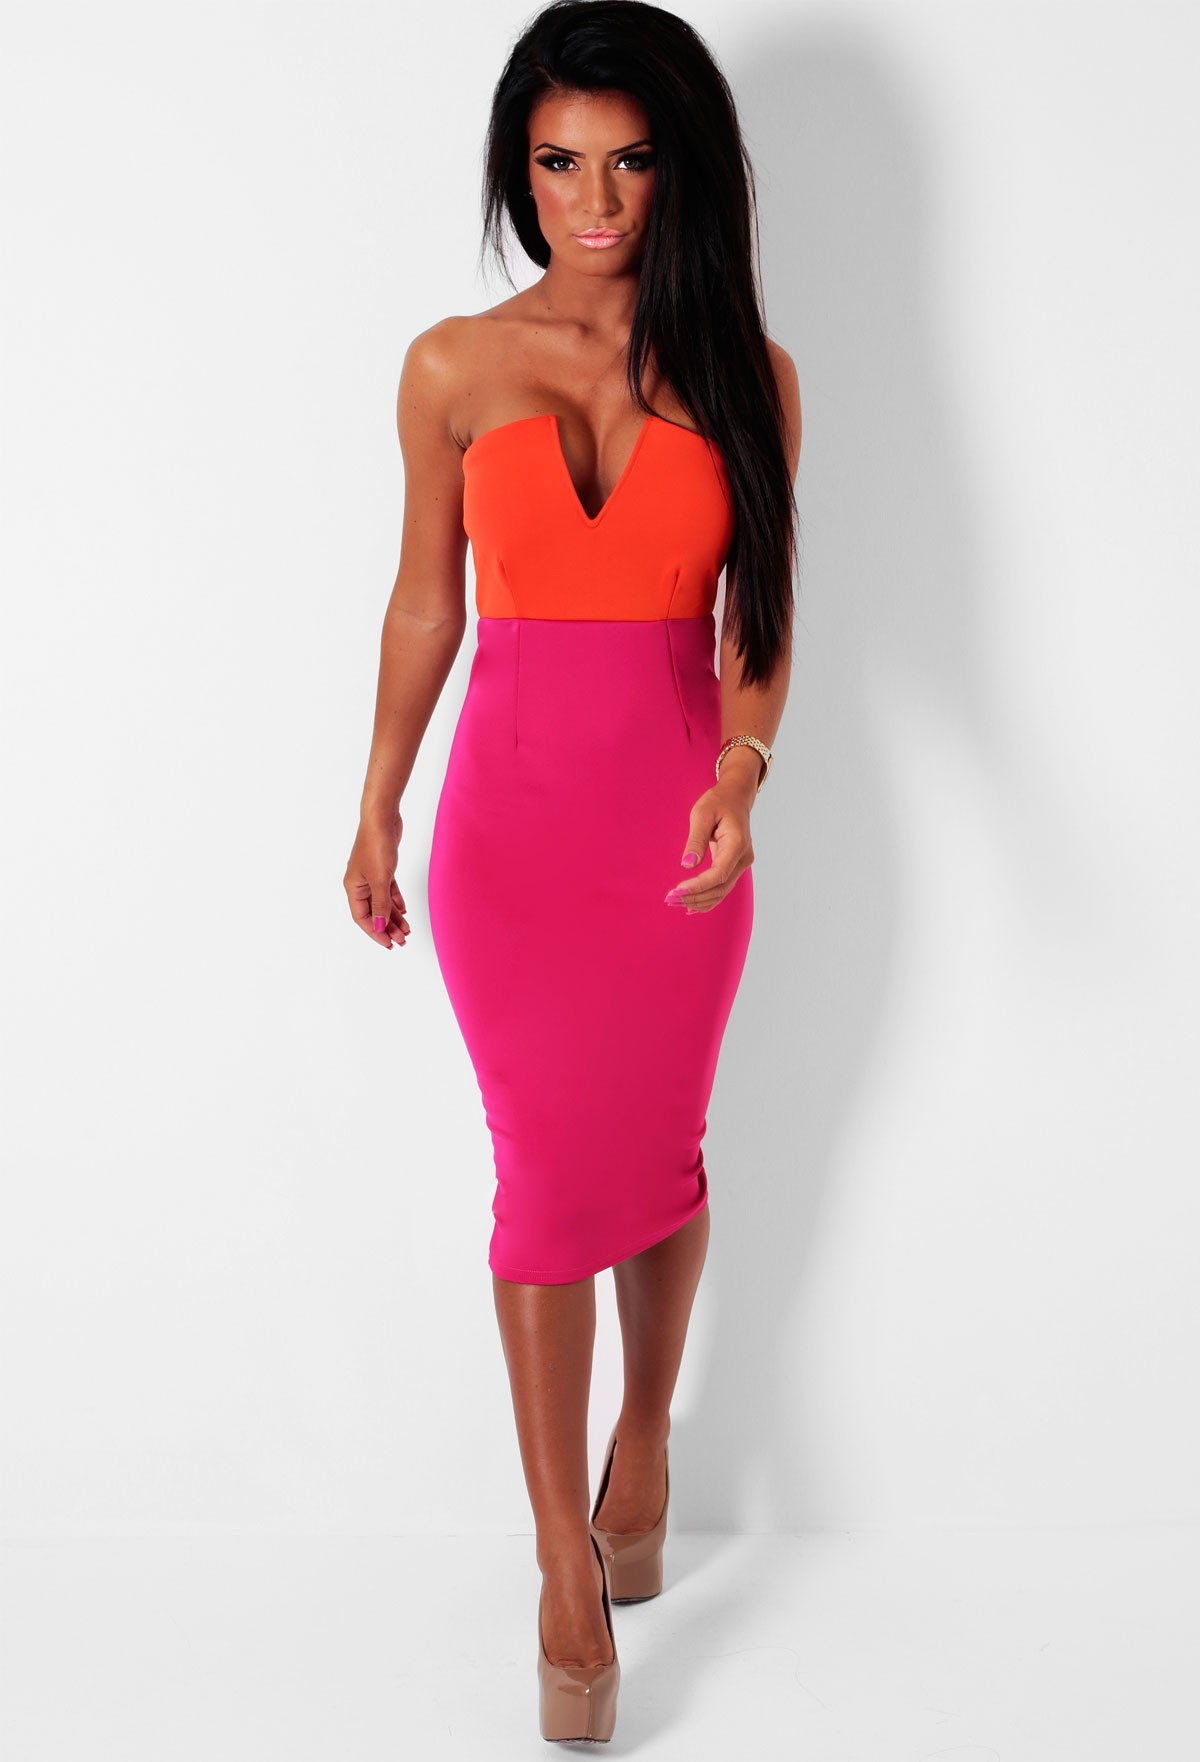 Orange And Pink Dress  Cocktail Dresses 2016